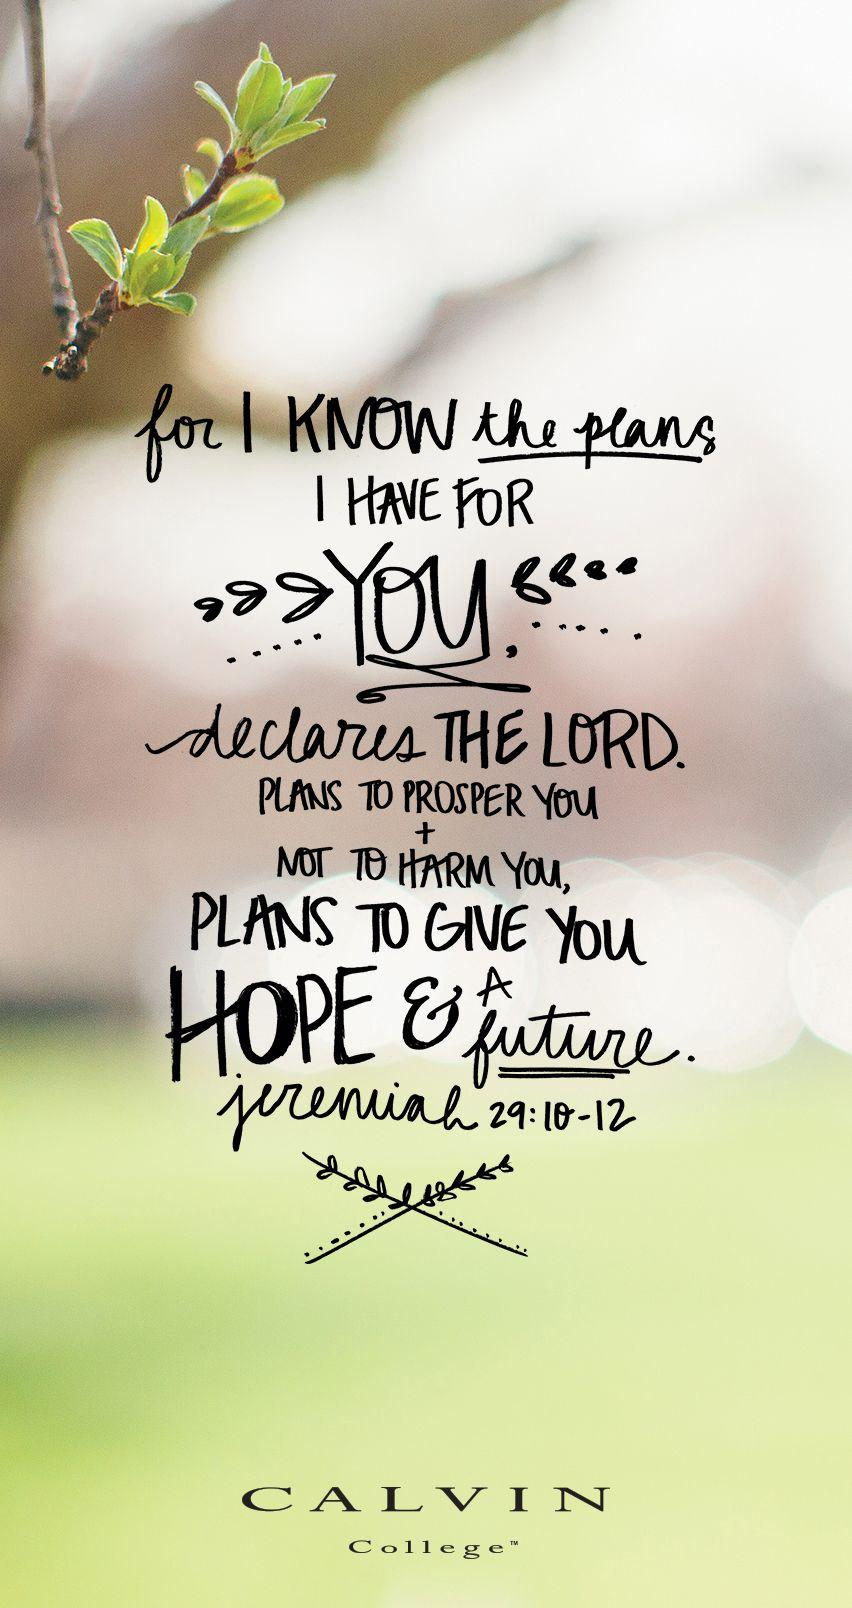 Bible Verse Wallpapers For Mobiles - Wallpaper Cave